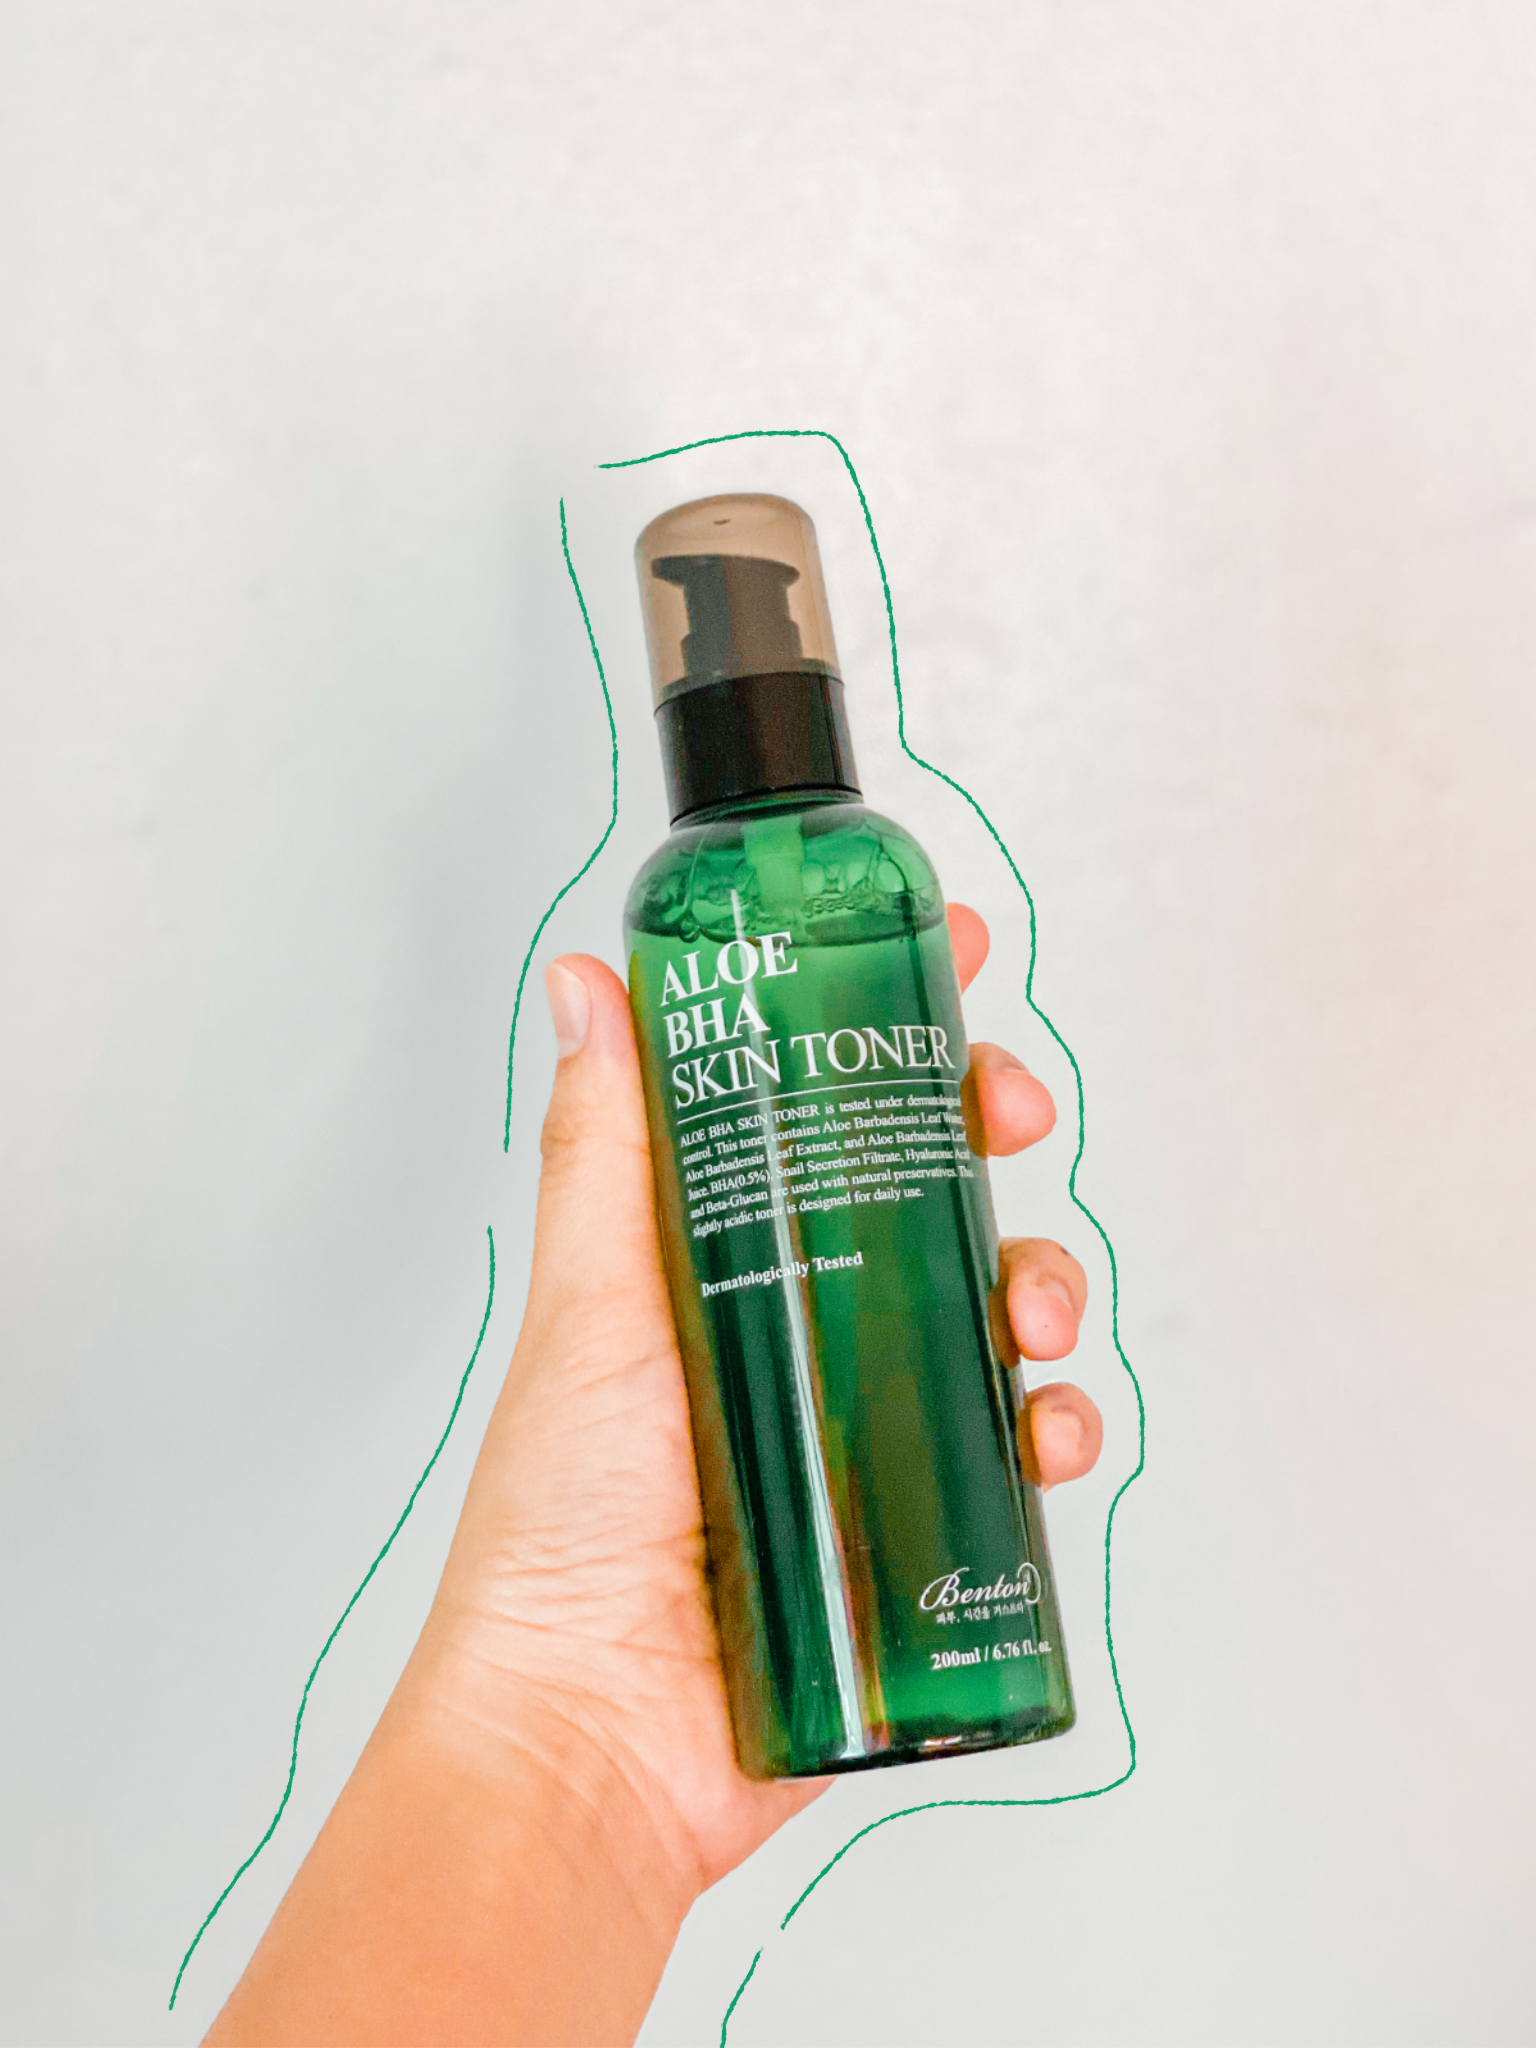 Style Korean Try Me Review Me: First Impressions on Influencers' Favorites from BENTON - BENTON ALOE BHA SKIN TONER